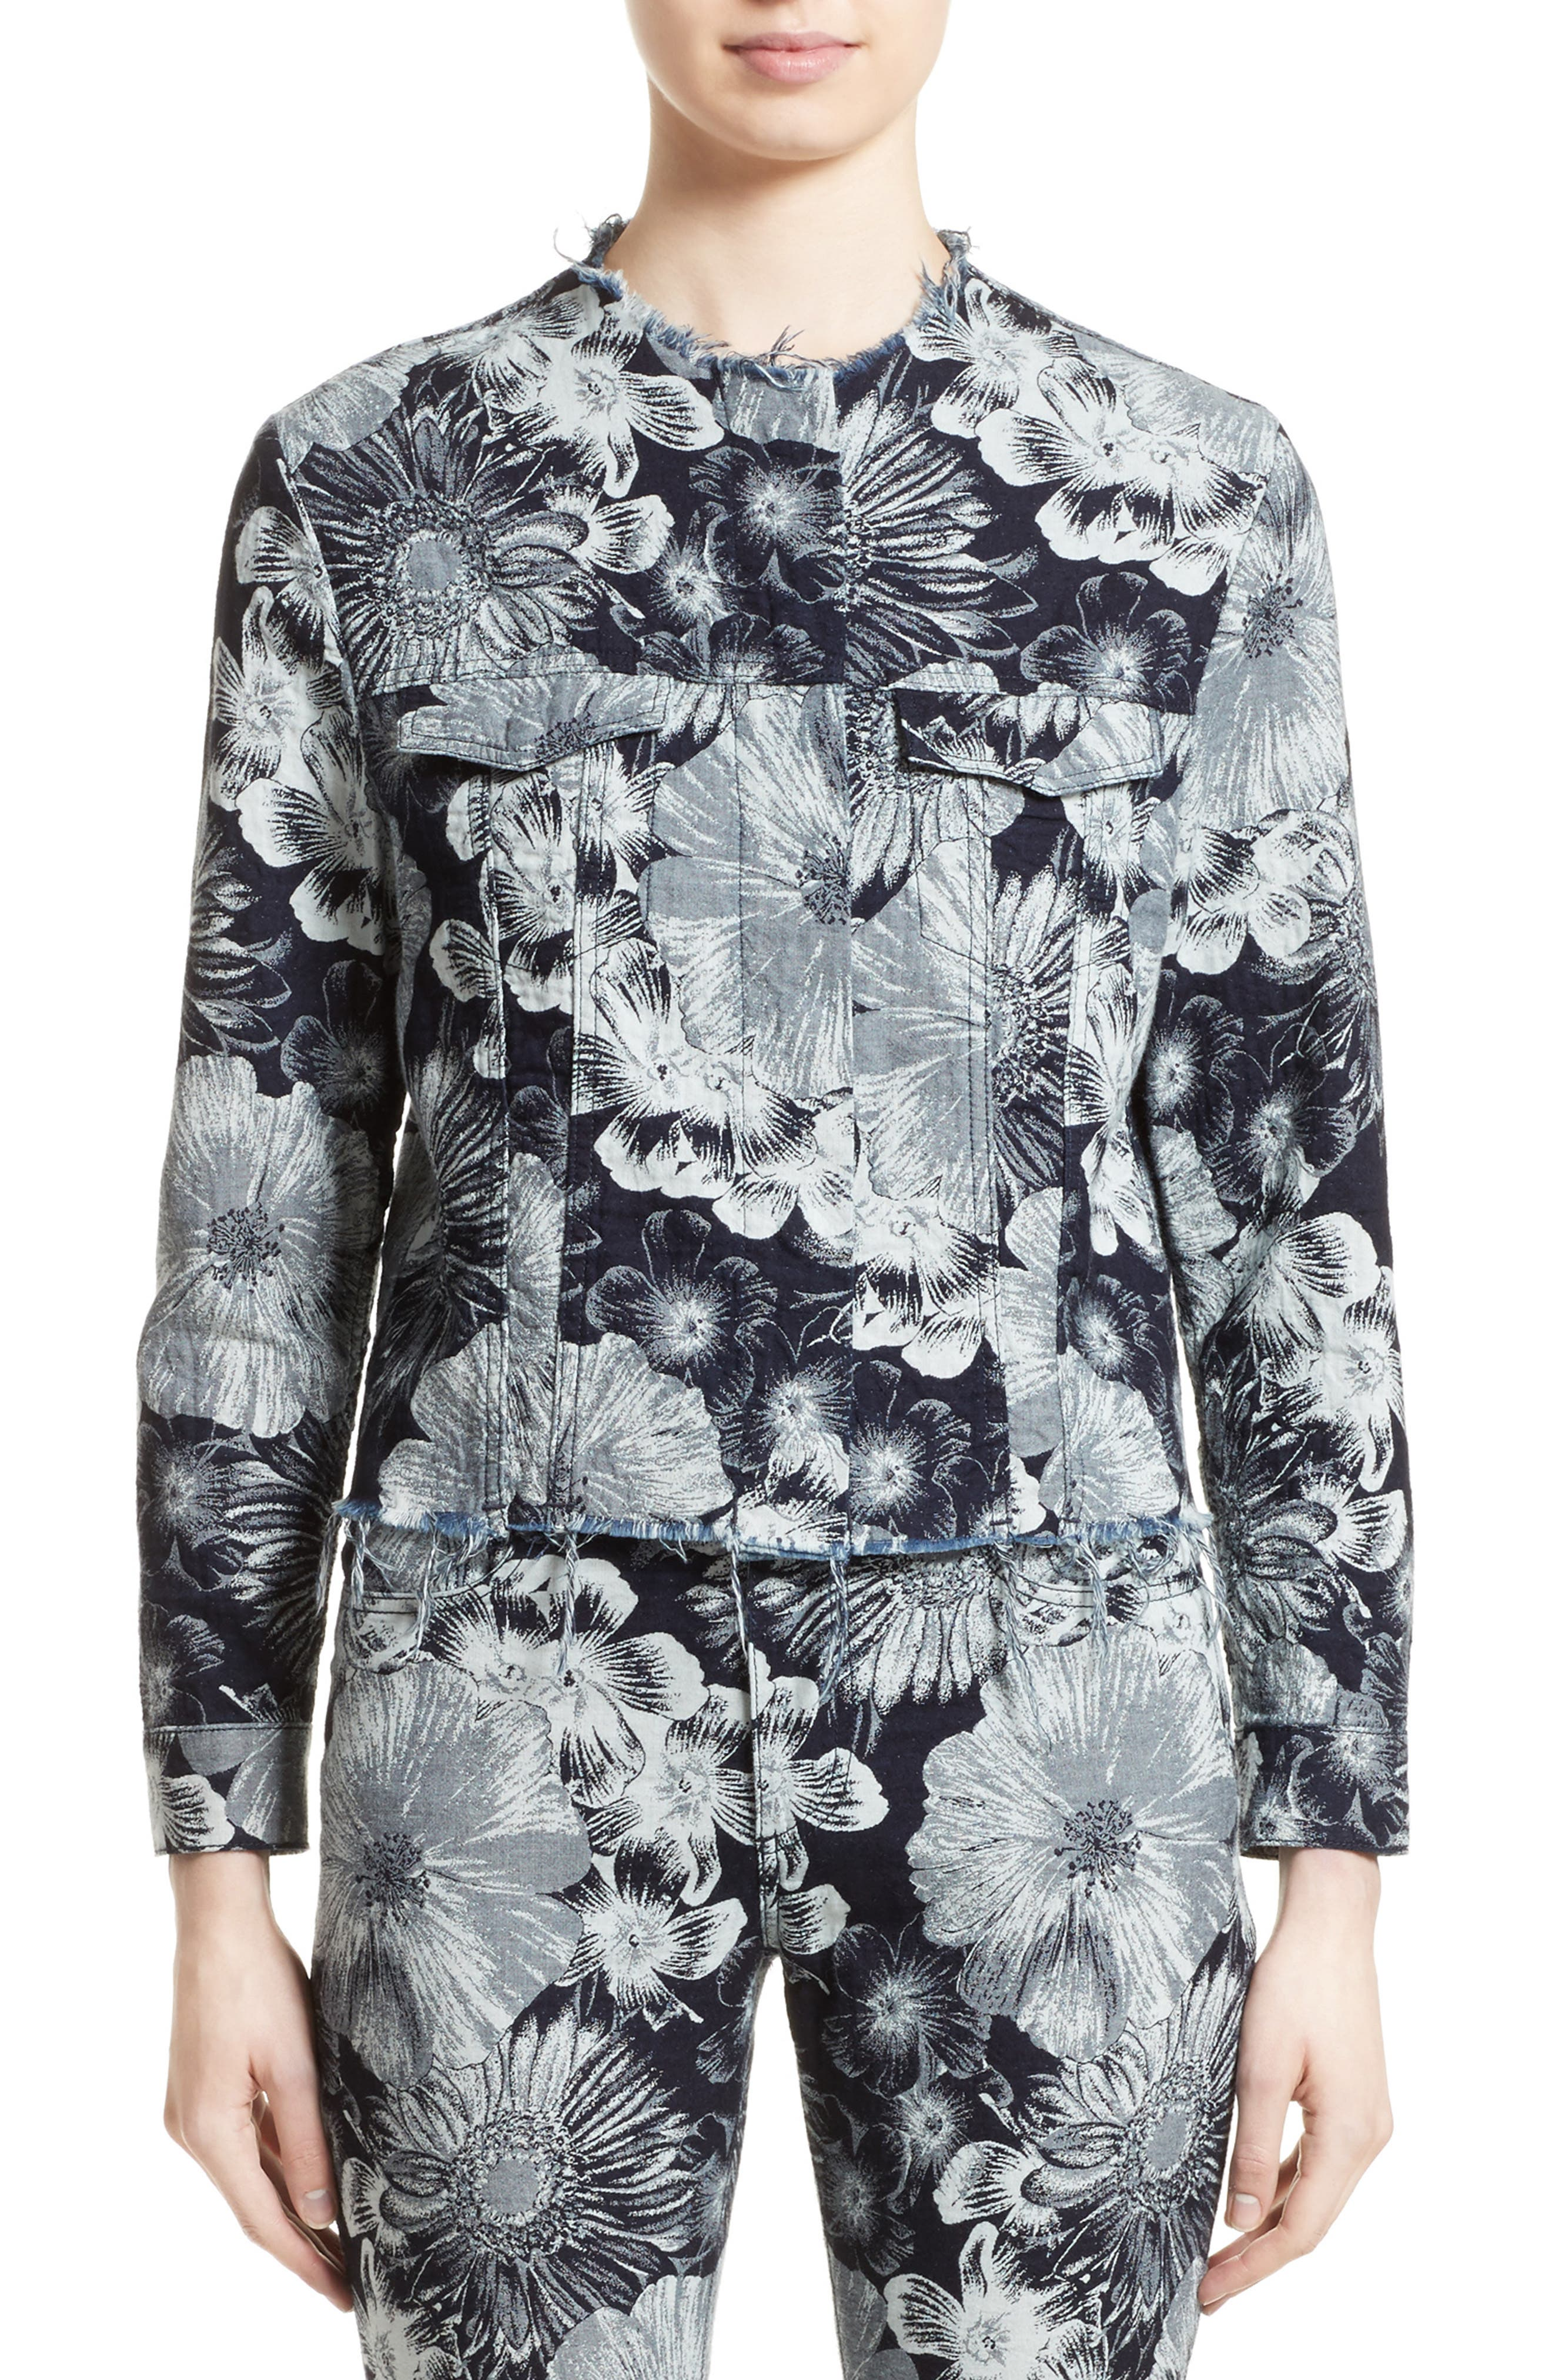 Marques'Almeida Floral Print Classic Fitted Denim Jacket,                             Main thumbnail 1, color,